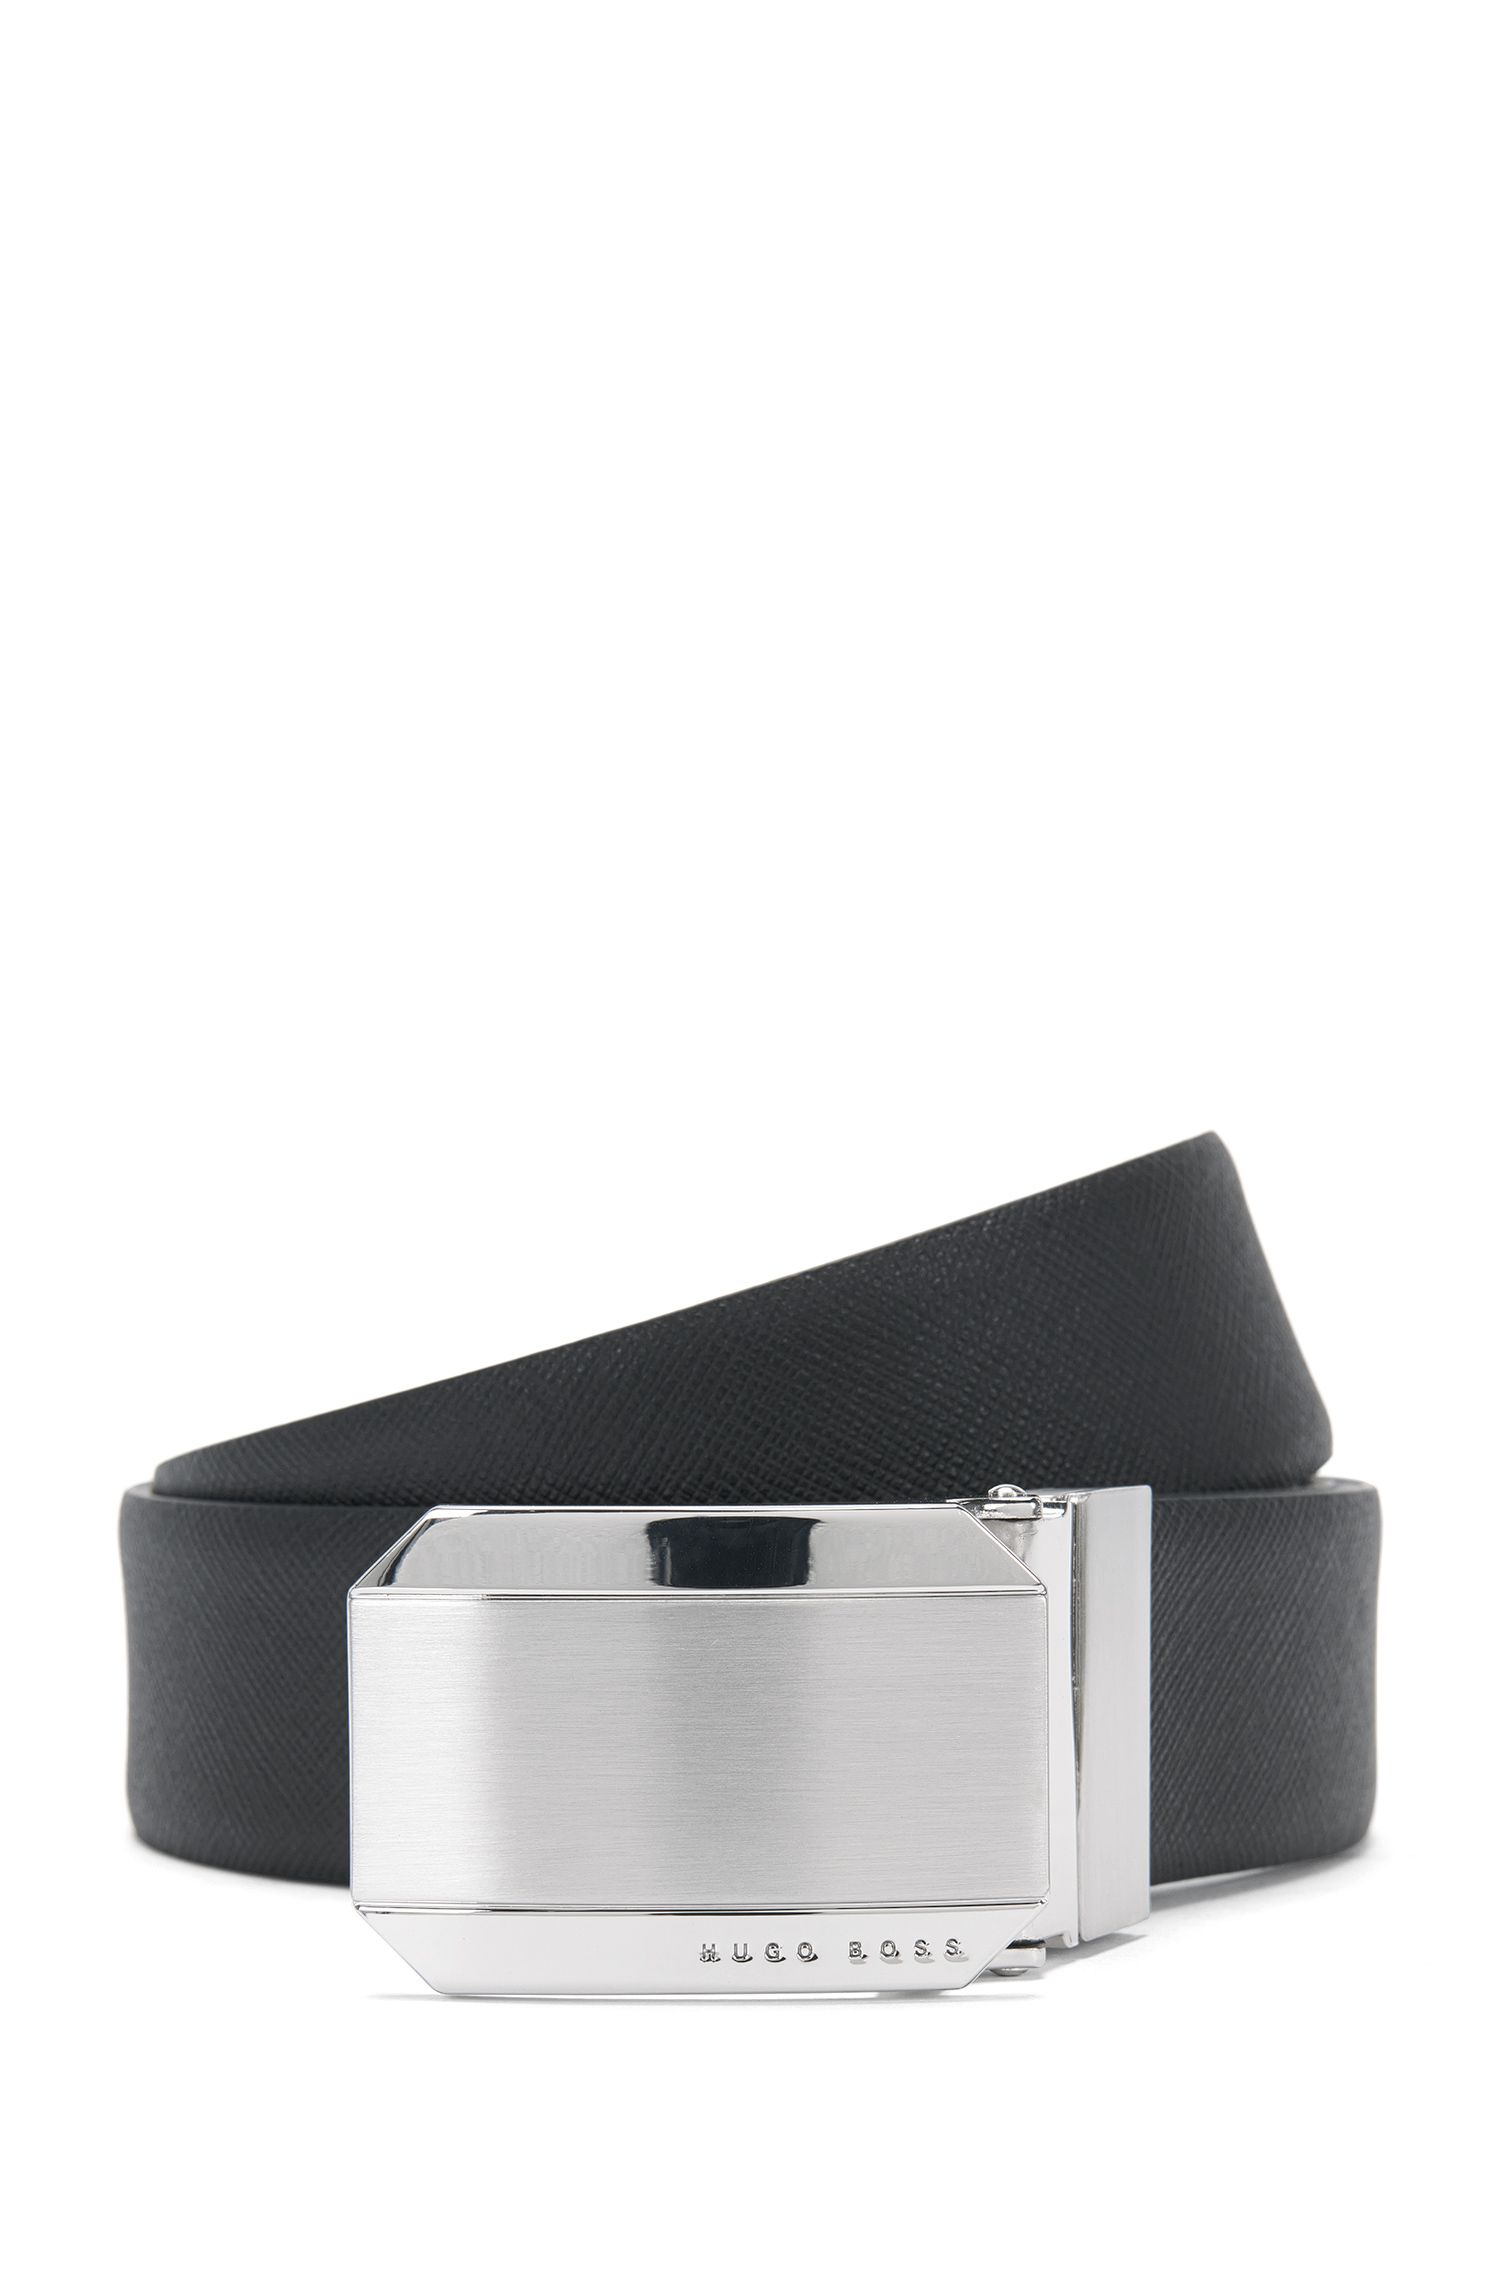 'Otello Or35 Ps' | Reversible Italian Leather Belt